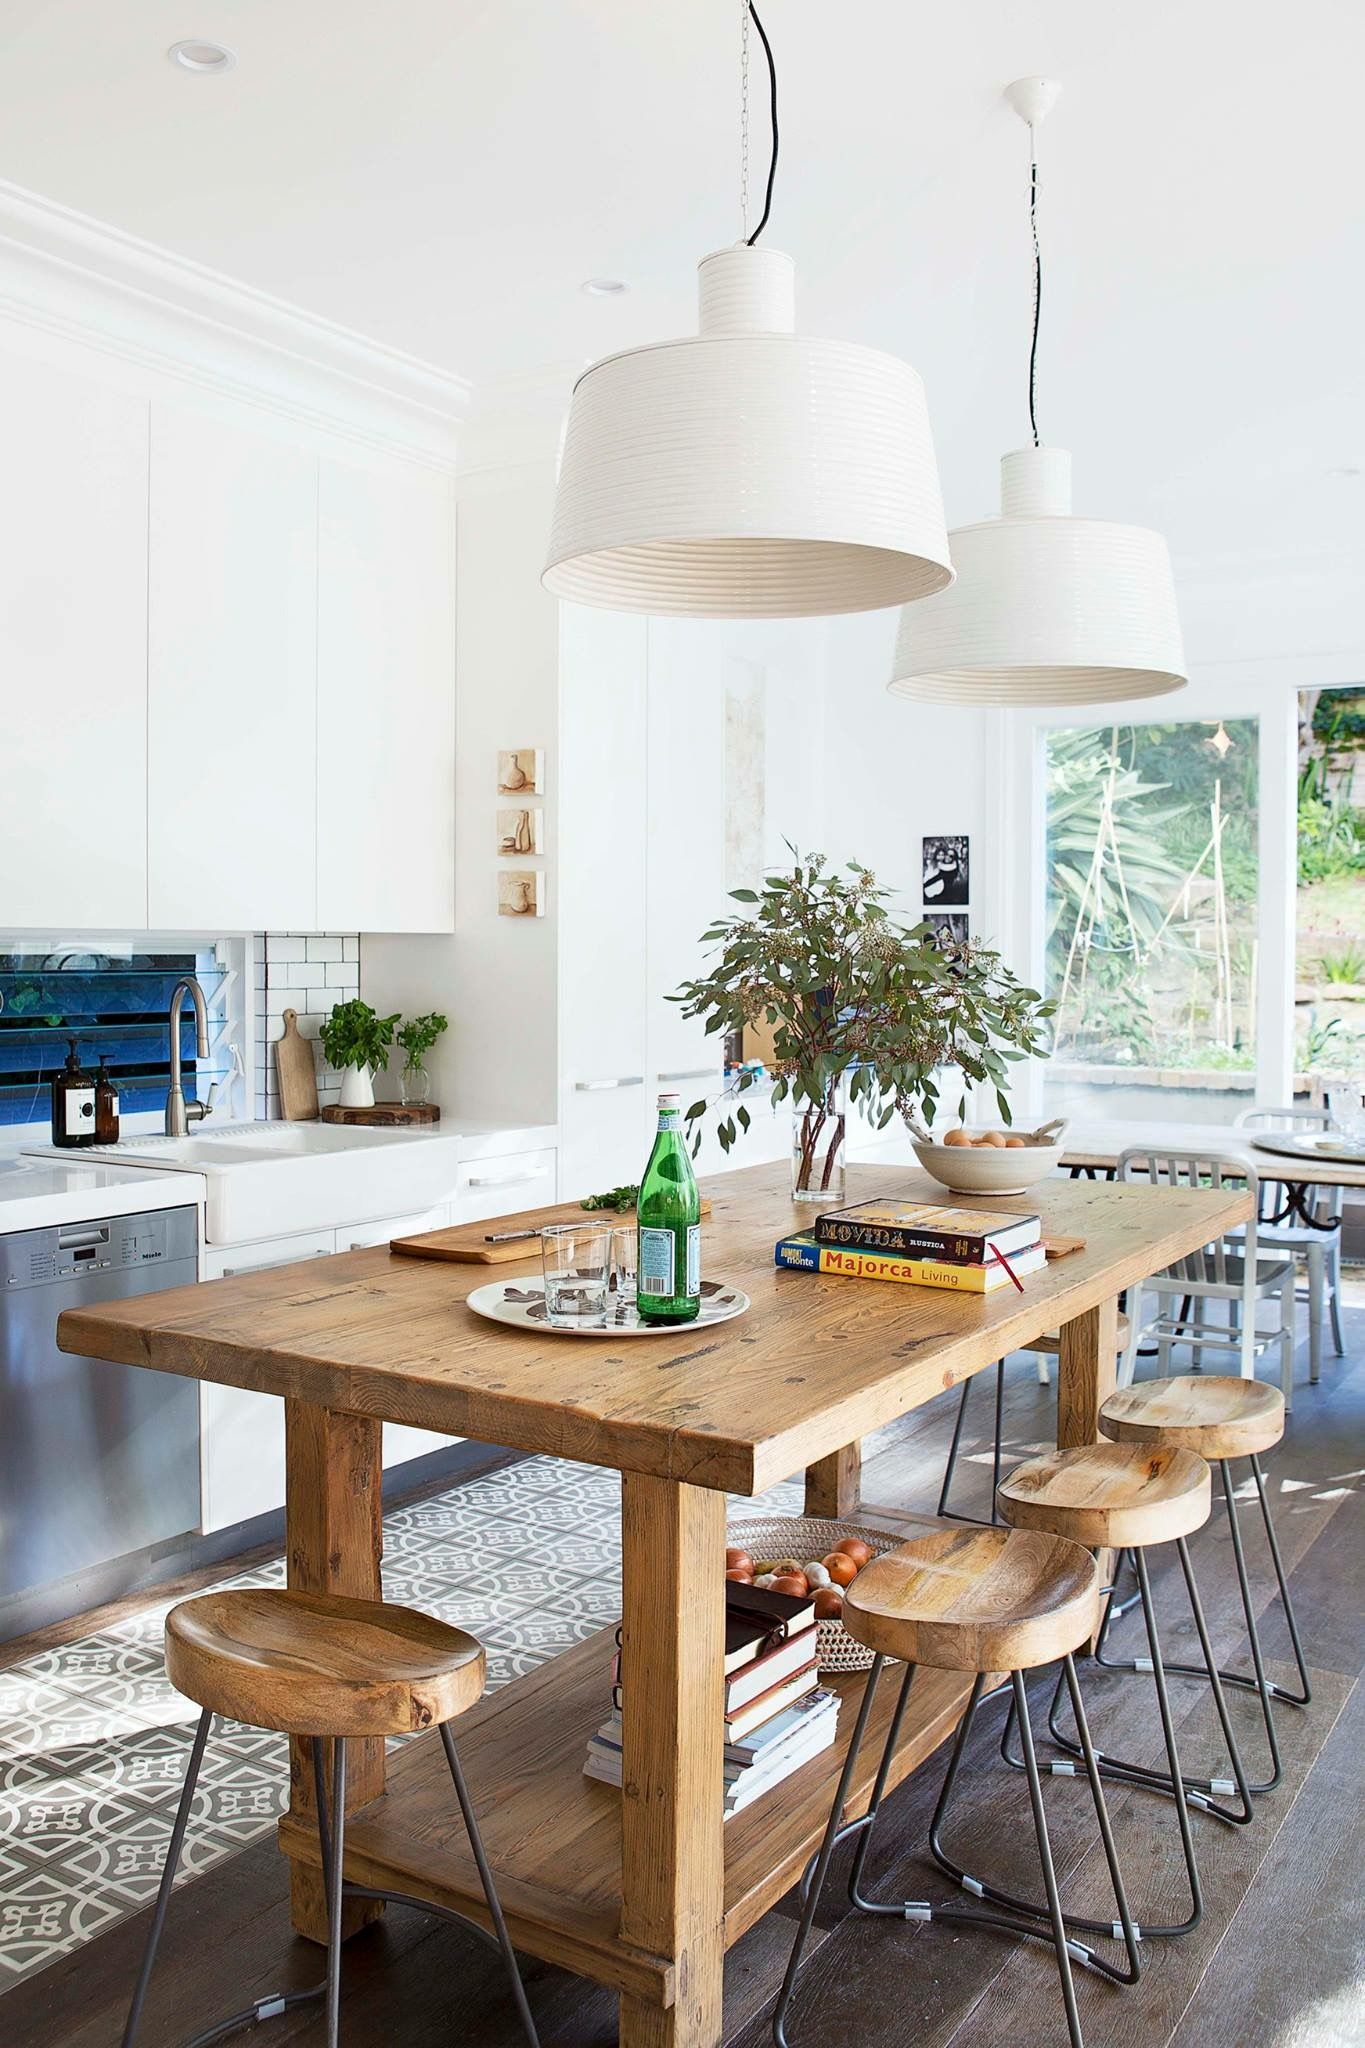 Pin by Olivia Gardiner on Beach house | Pinterest | Table and ...